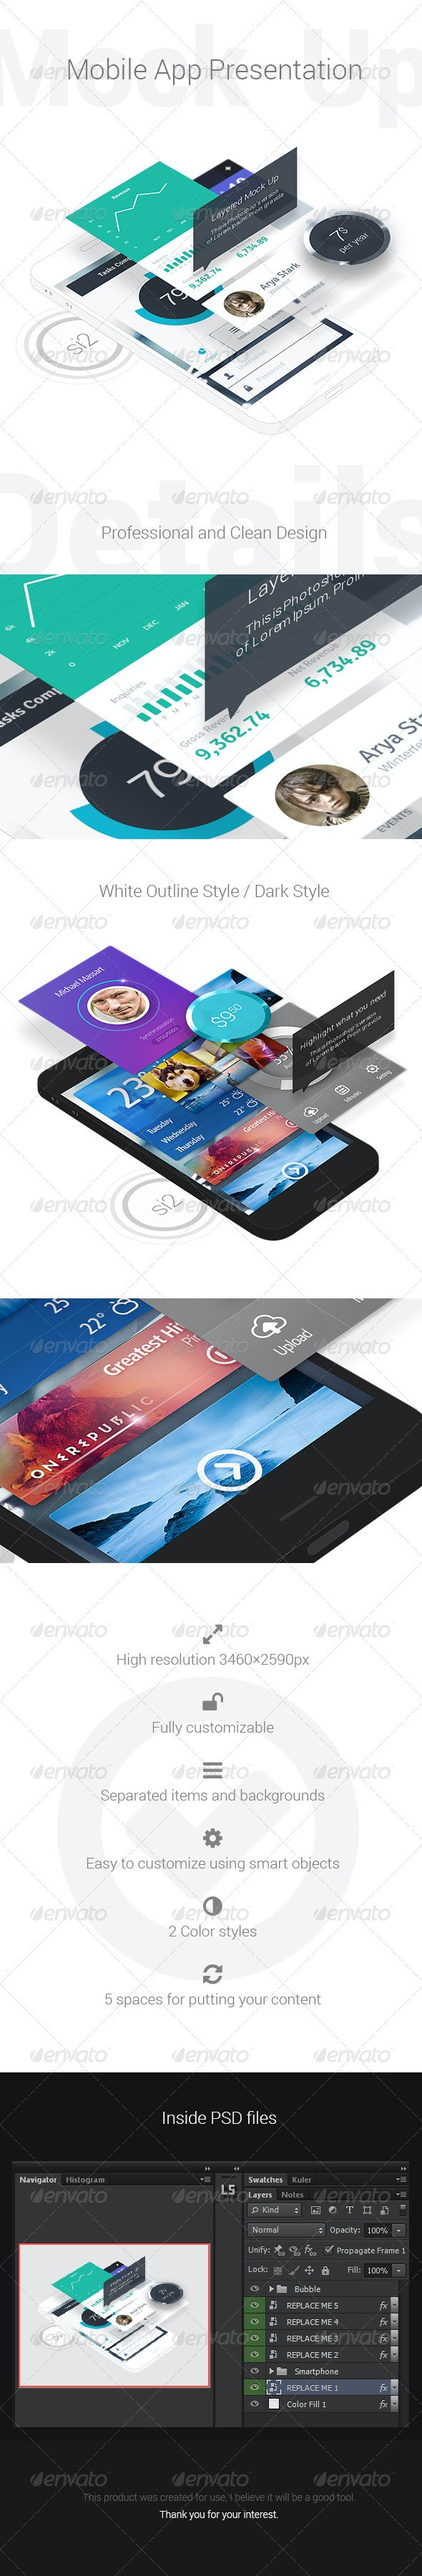 Mobile App Presentation Mock-Up - Mobile Displays